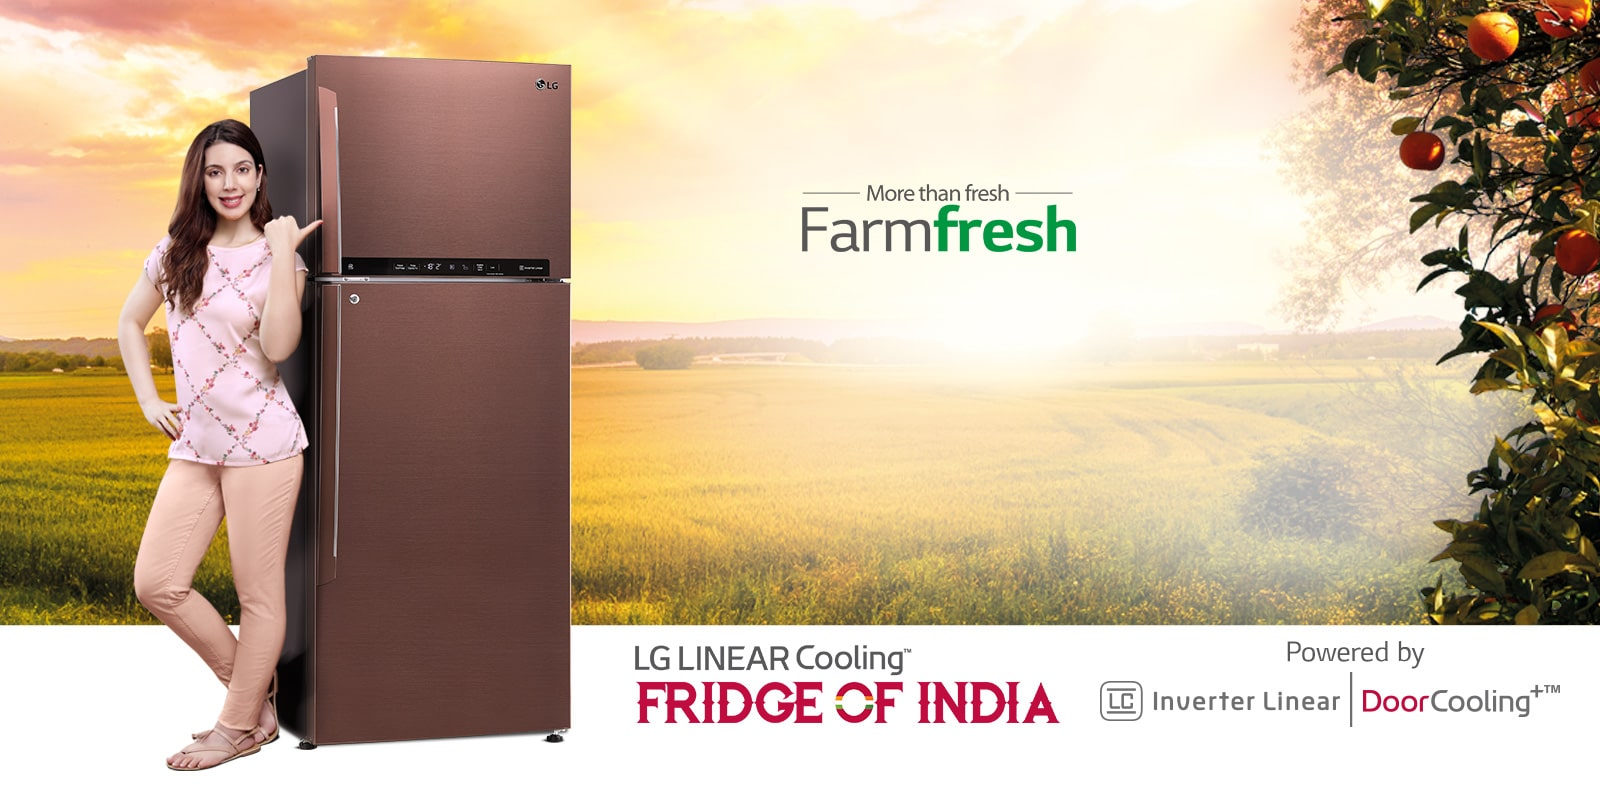 LG Refrigerators - Compare Fridge Price and Specs Online